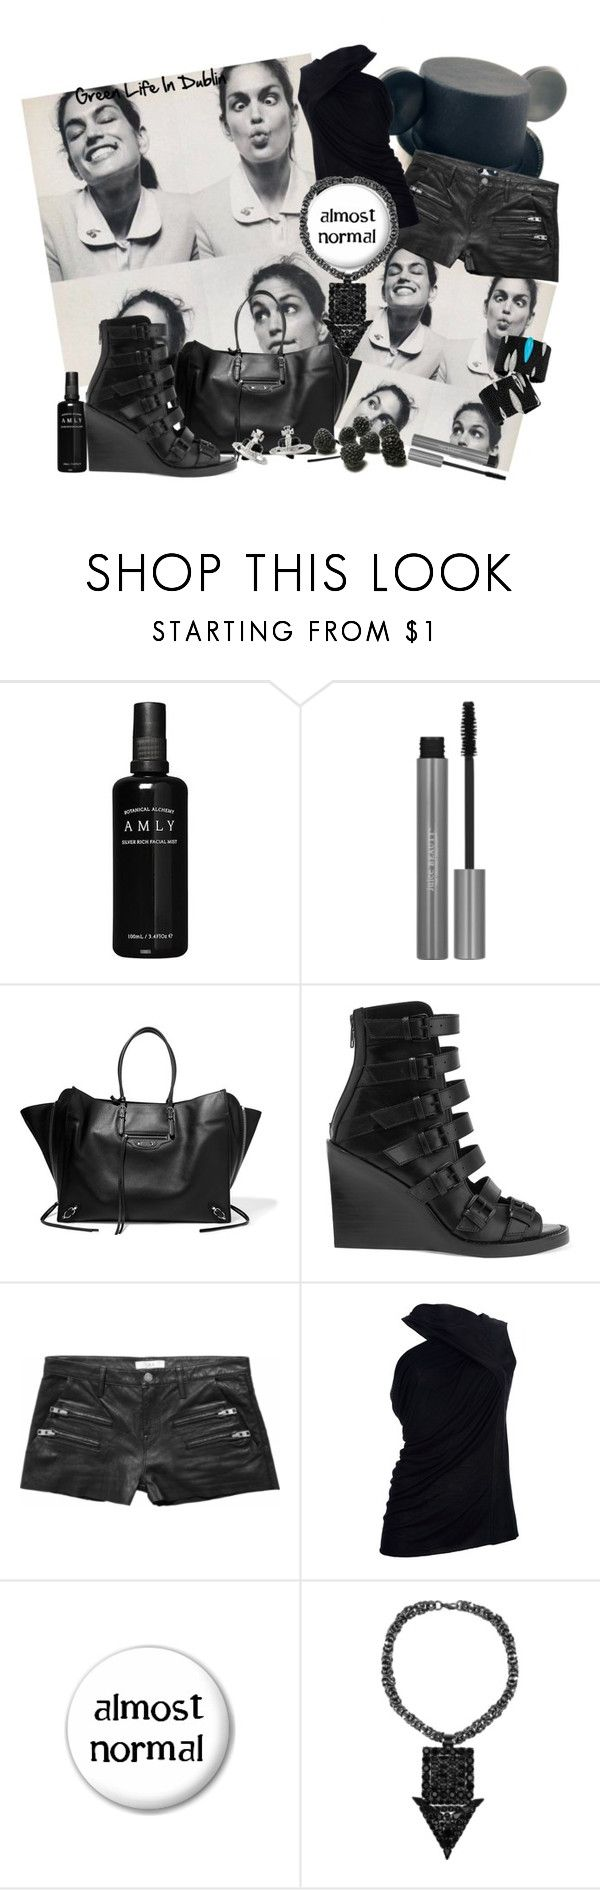 """""""Almost Normal. I swear!"""" by green-life-in-dublin ❤ liked on Polyvore featuring Balenciaga, Ann Demeulemeester, Disney, IRO, Rick Owens, Tom Binns, November and Vivienne Westwood"""